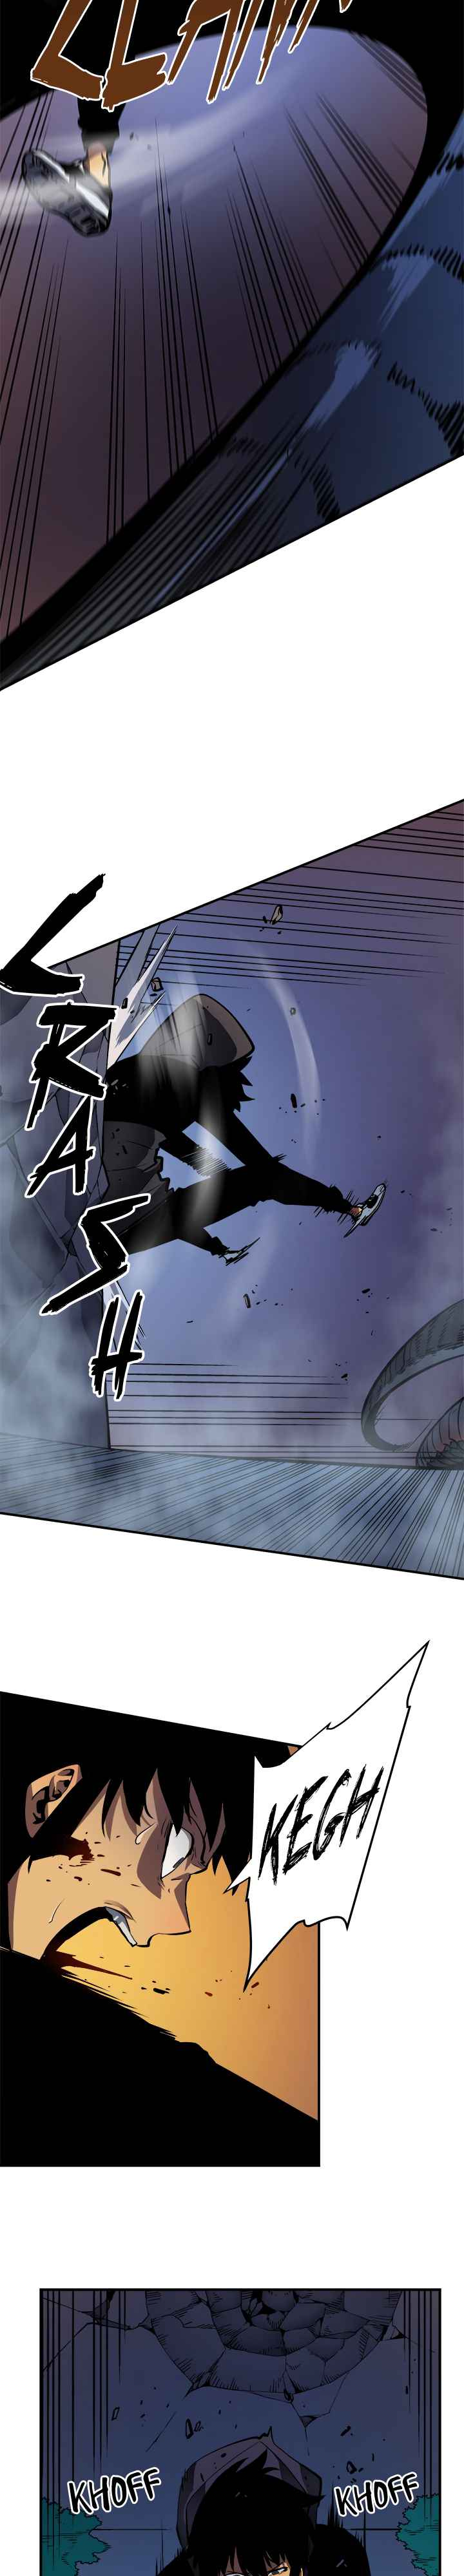 Solo Leveling Chapter 15 Page 30